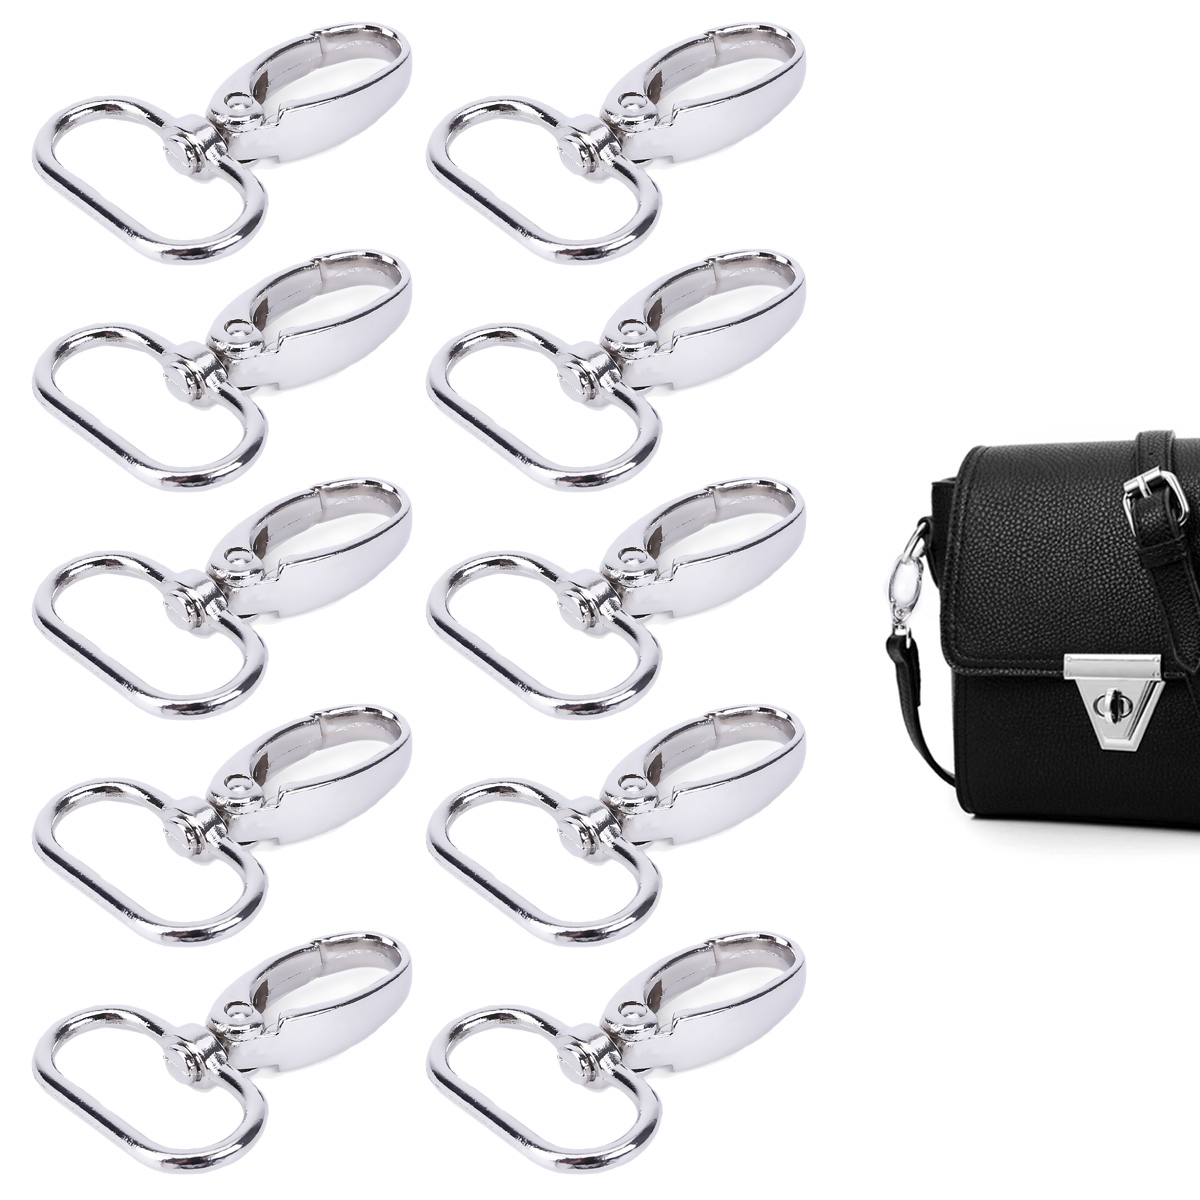 30pcs 20-25mm Swivel Trigger Clips Snap Hooks Lobster Clasps Bags Keychains DIY